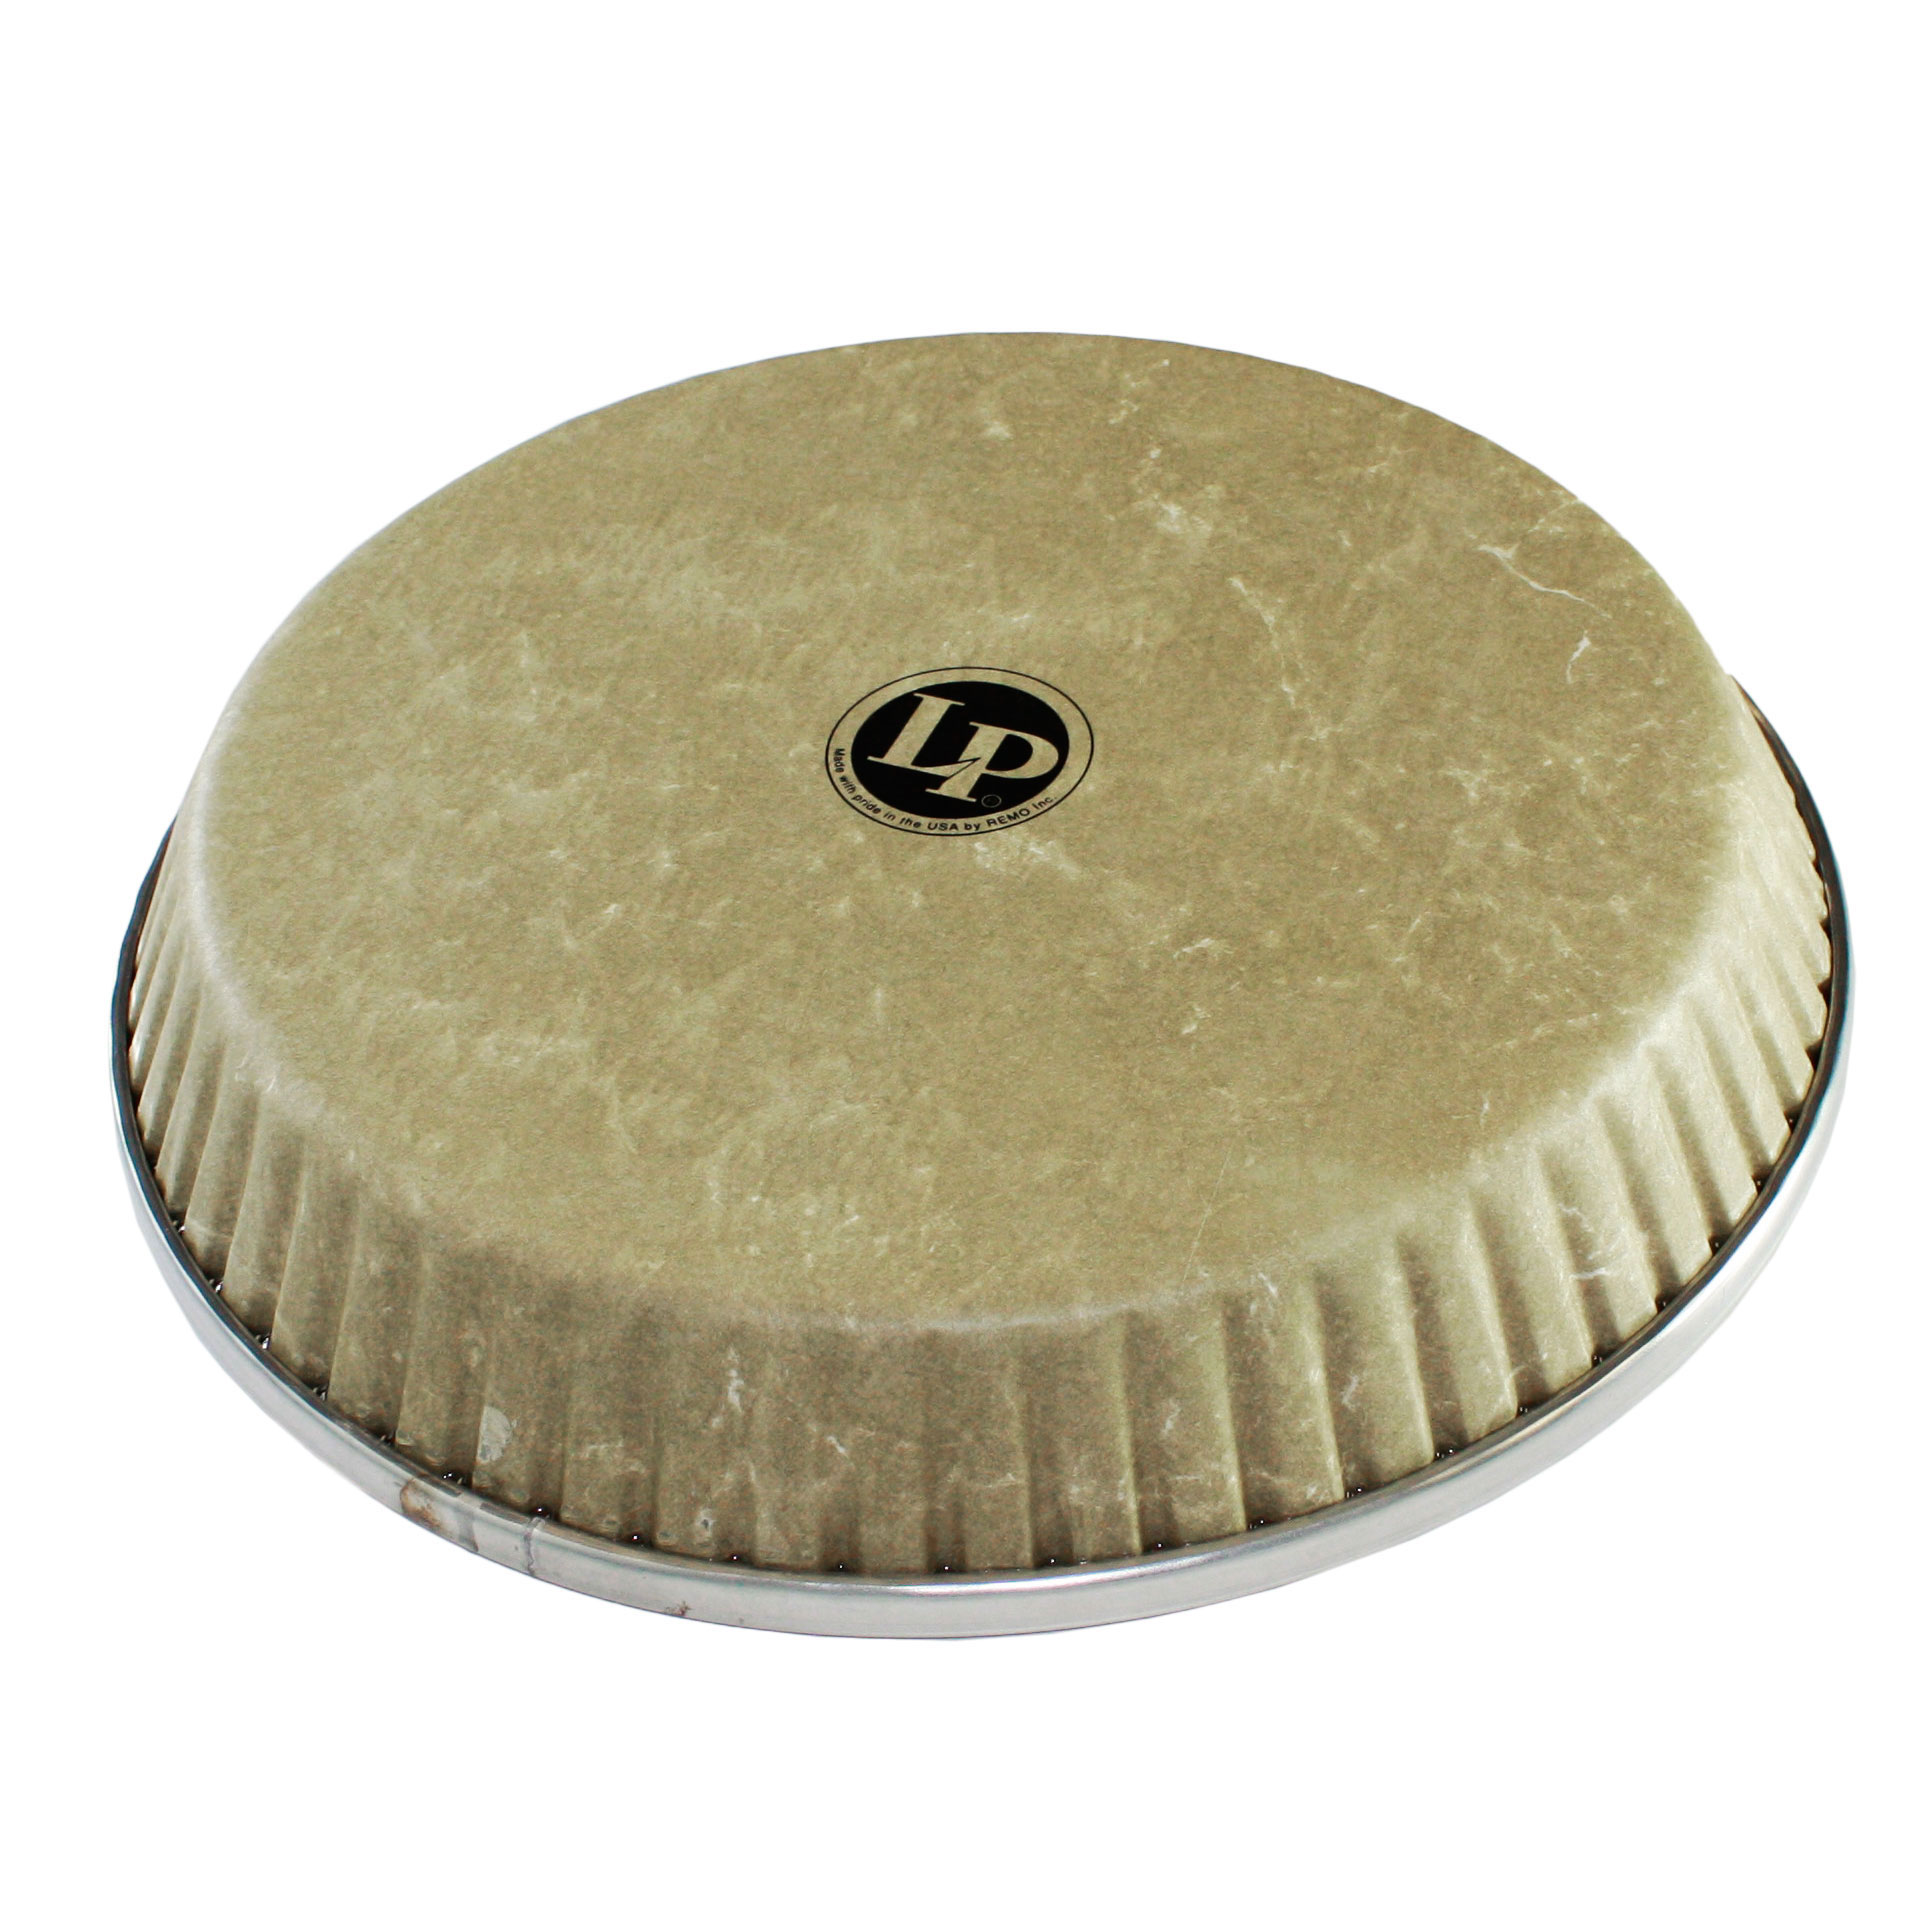 "LP 8.5"" Fiberskyn 3 Synthetic Bongo Drum Head"